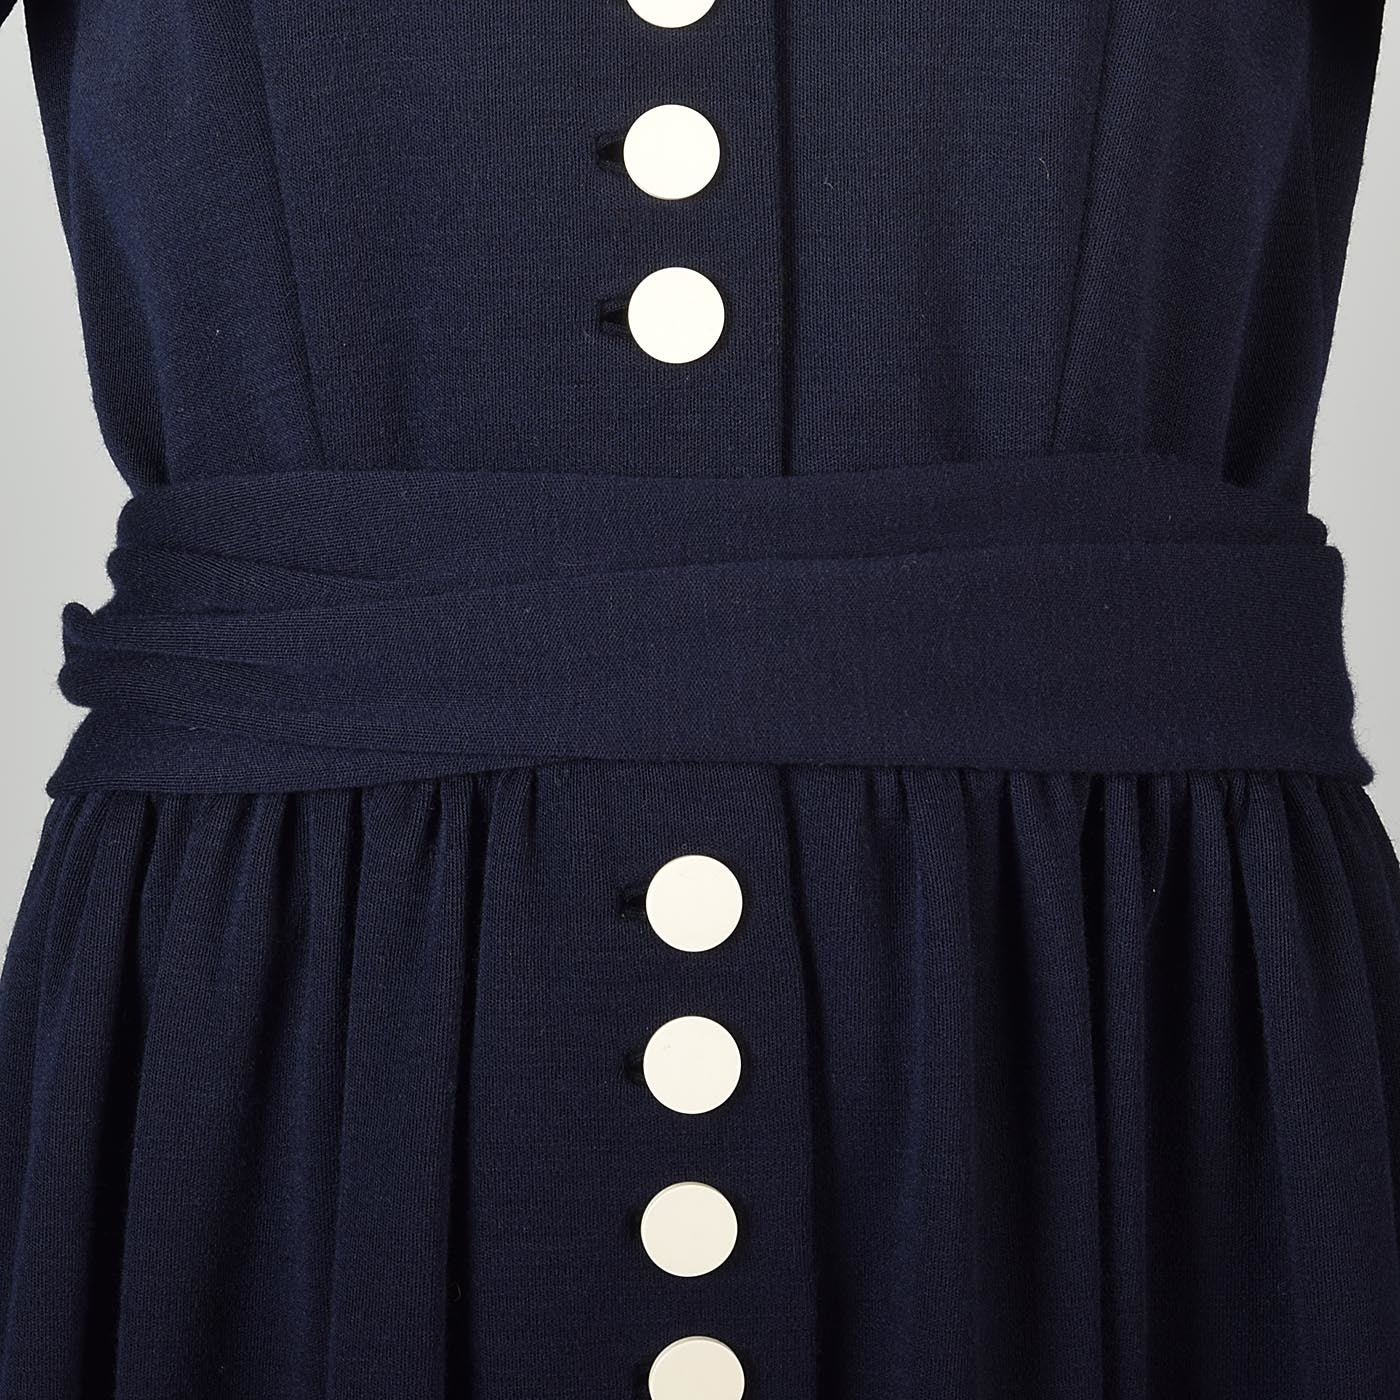 Classic 1960s Normal Norell Navy Blue Dress with White Buttons